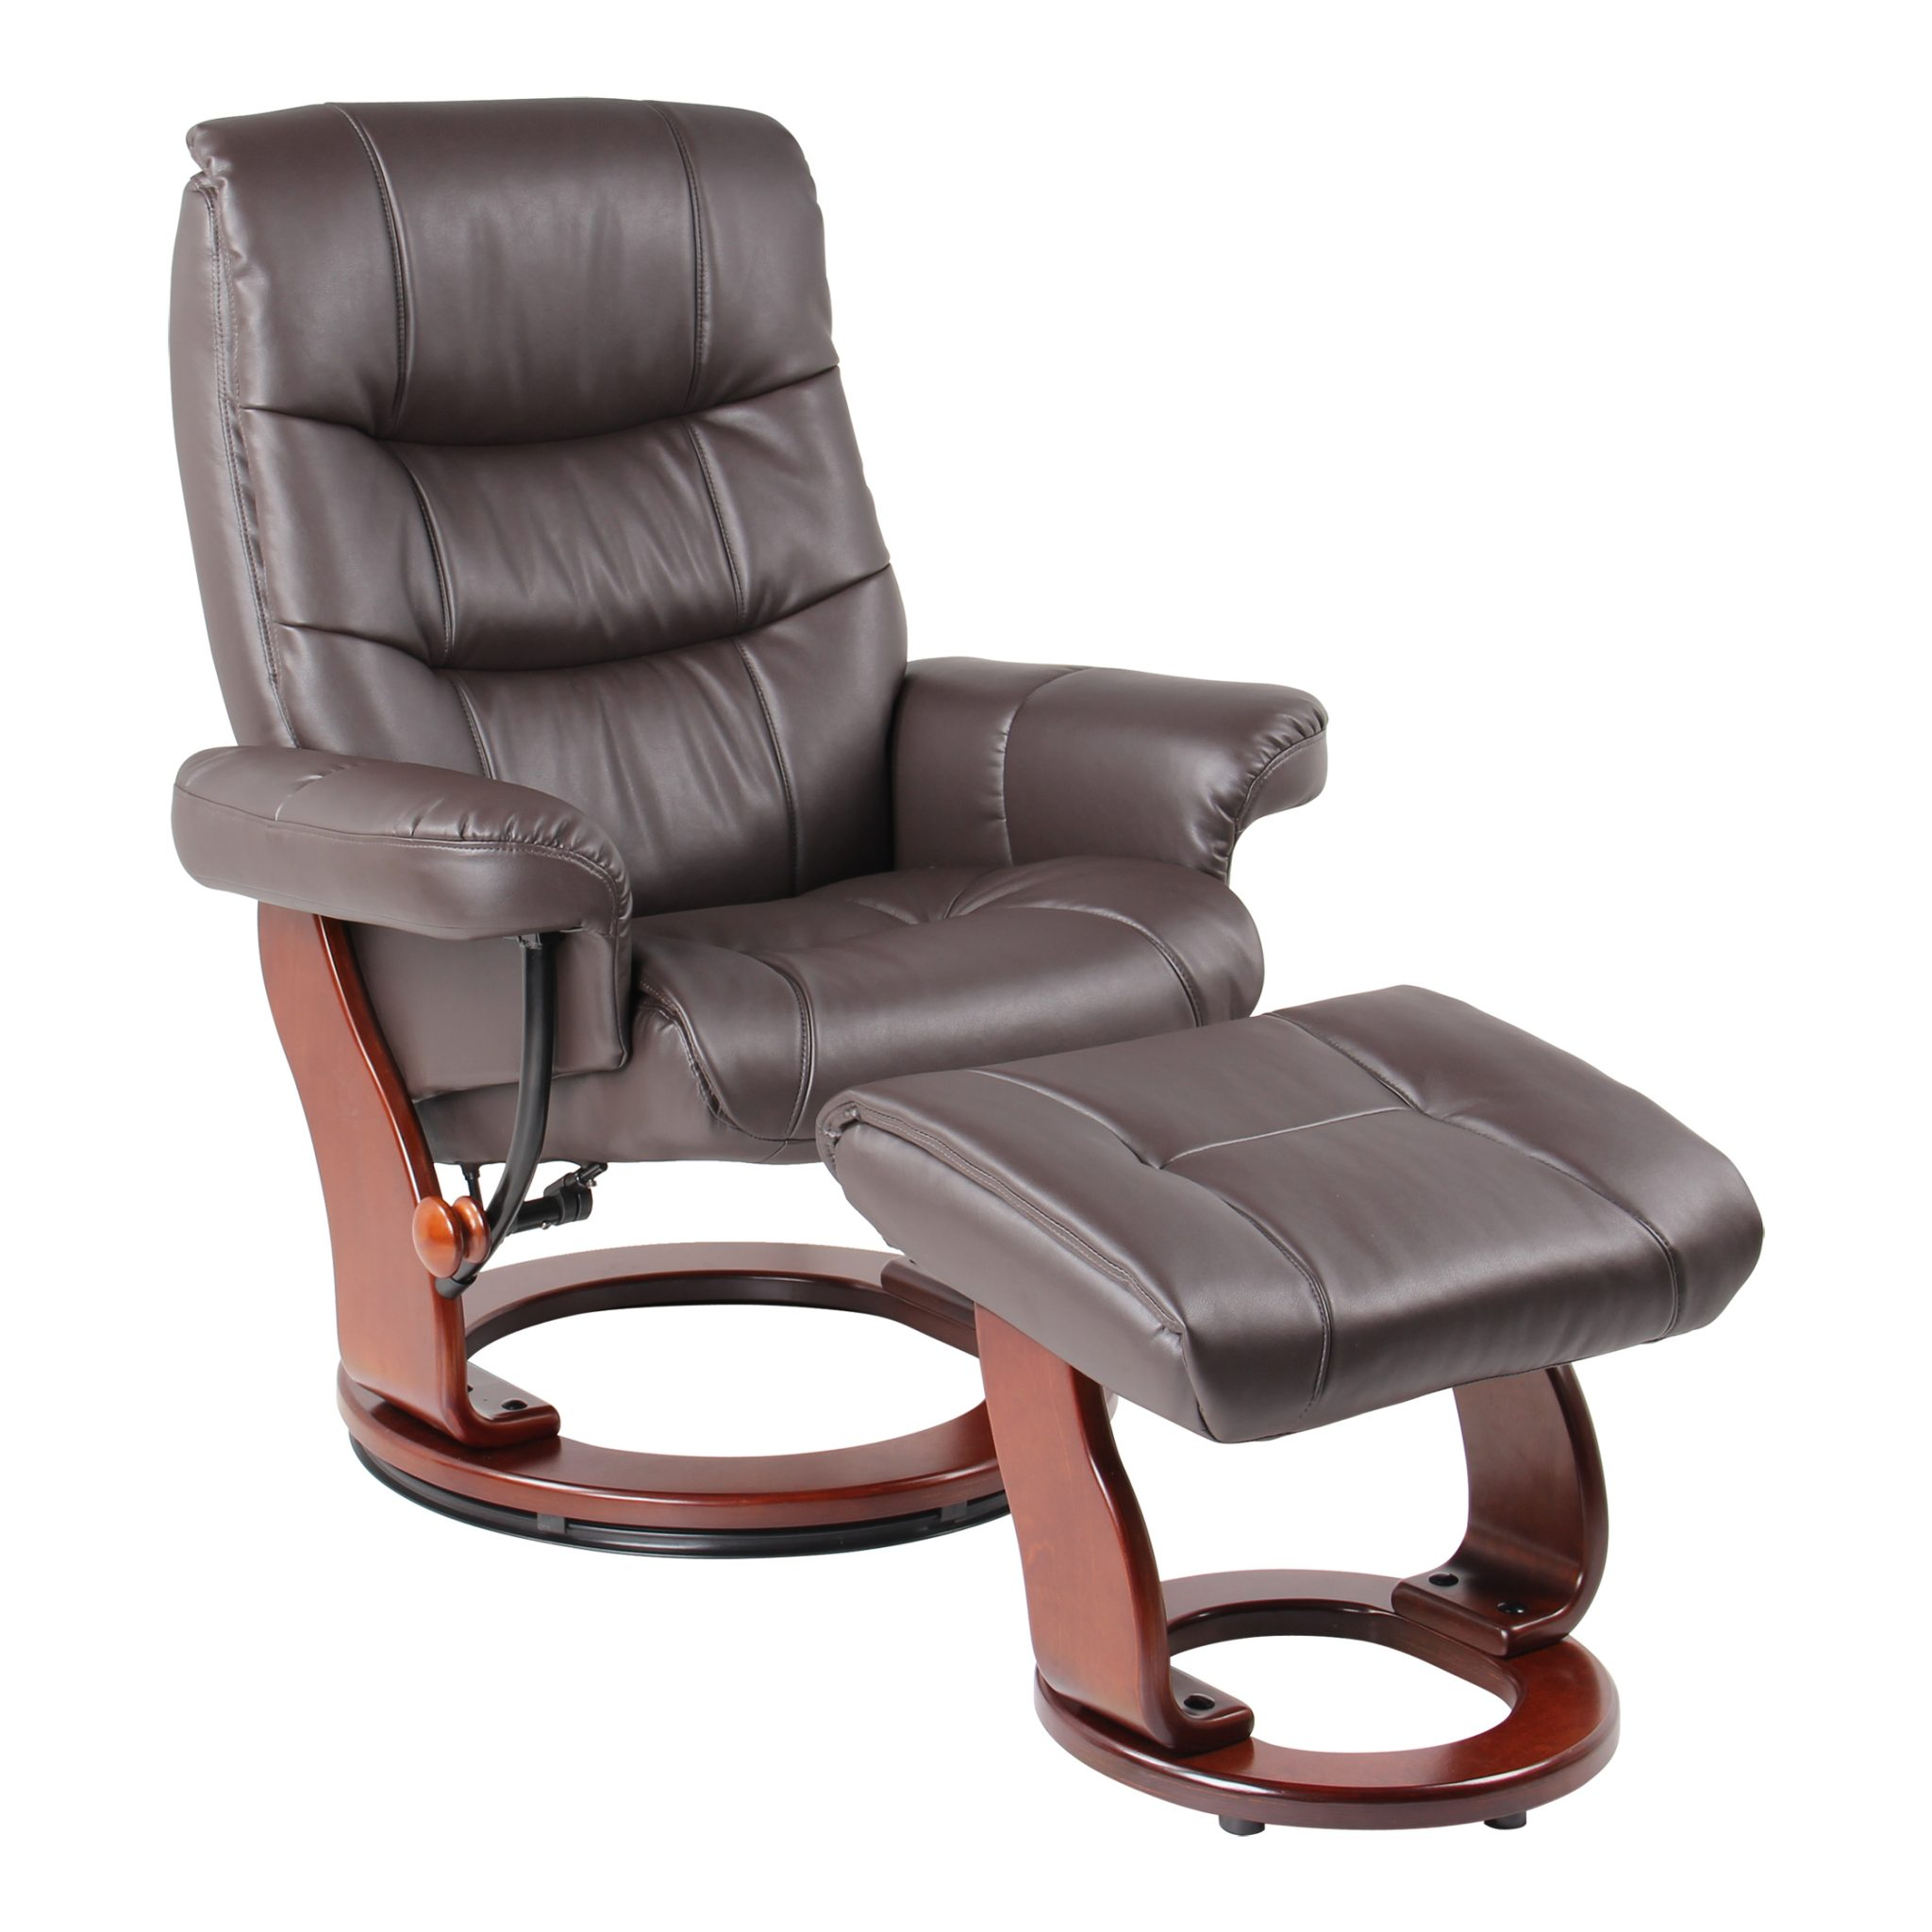 zero gravity chair clearance quechua folding stress free rosa recliner with ottoman